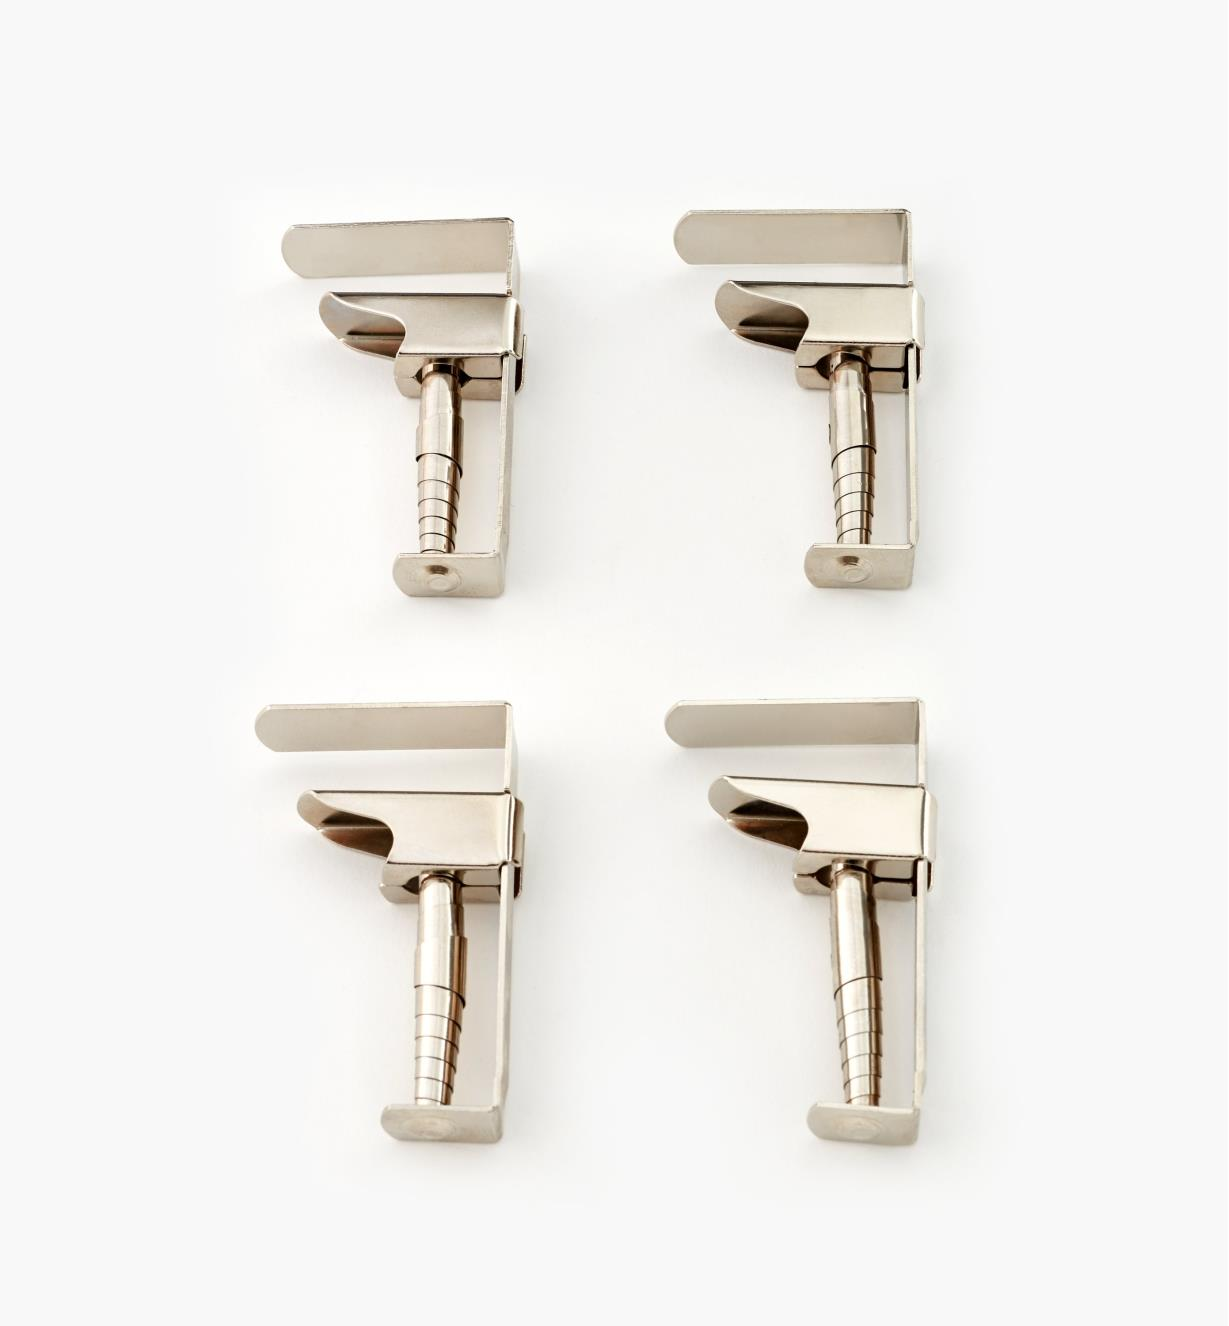 ET129 - Tablecloth Clips, Set of 4